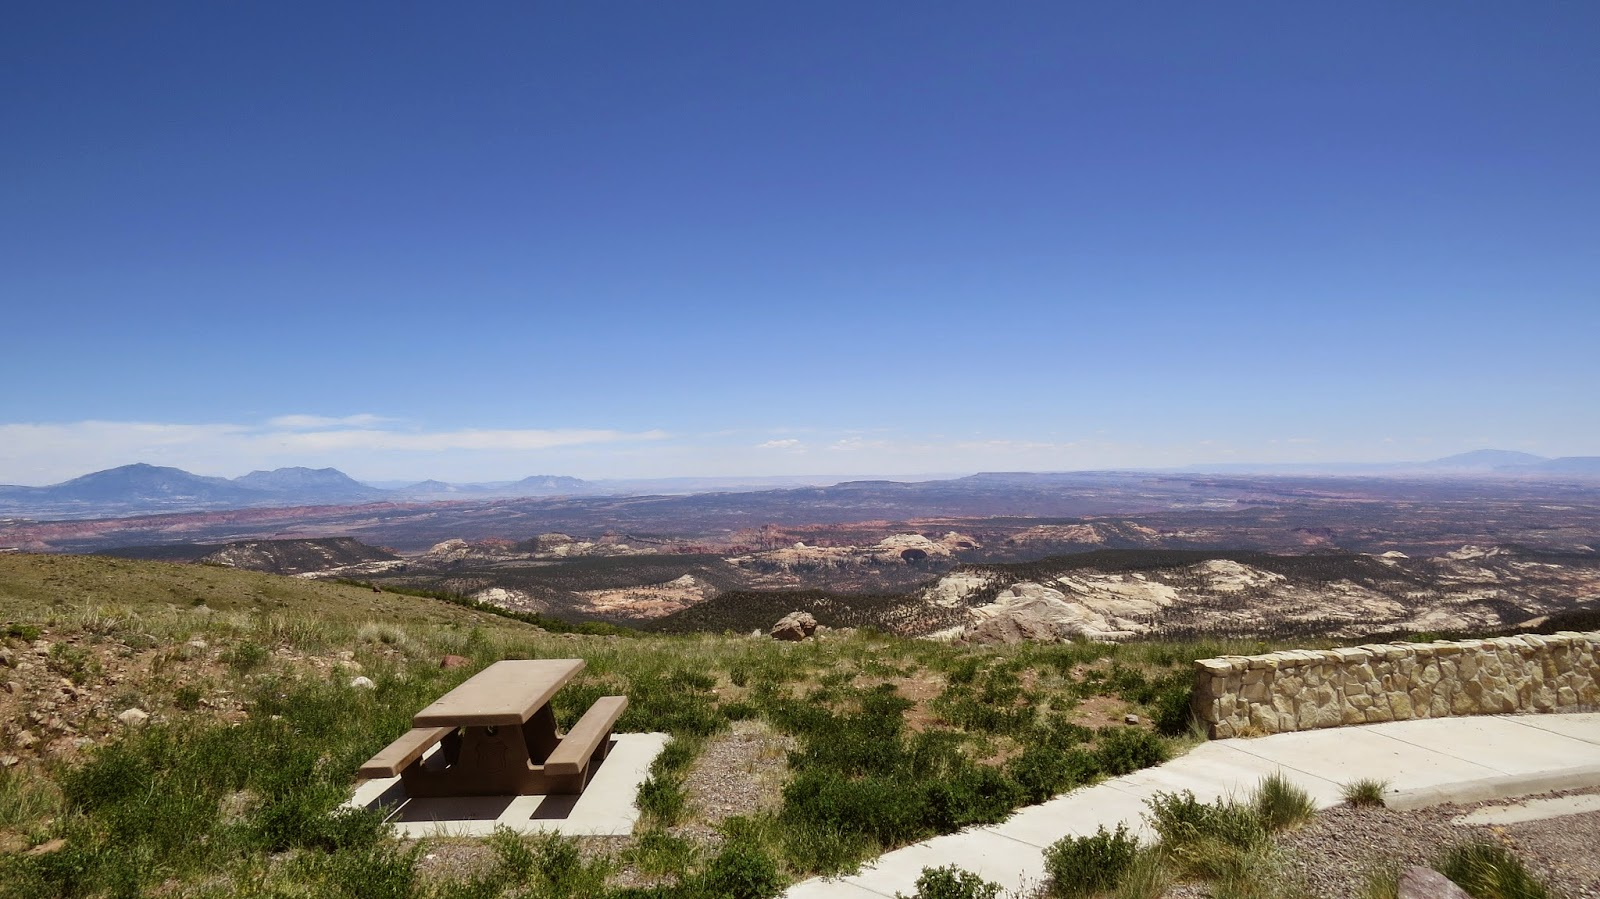 A view over Grand Staircase Escalante National Monument from a rest area near Boulder, Utah